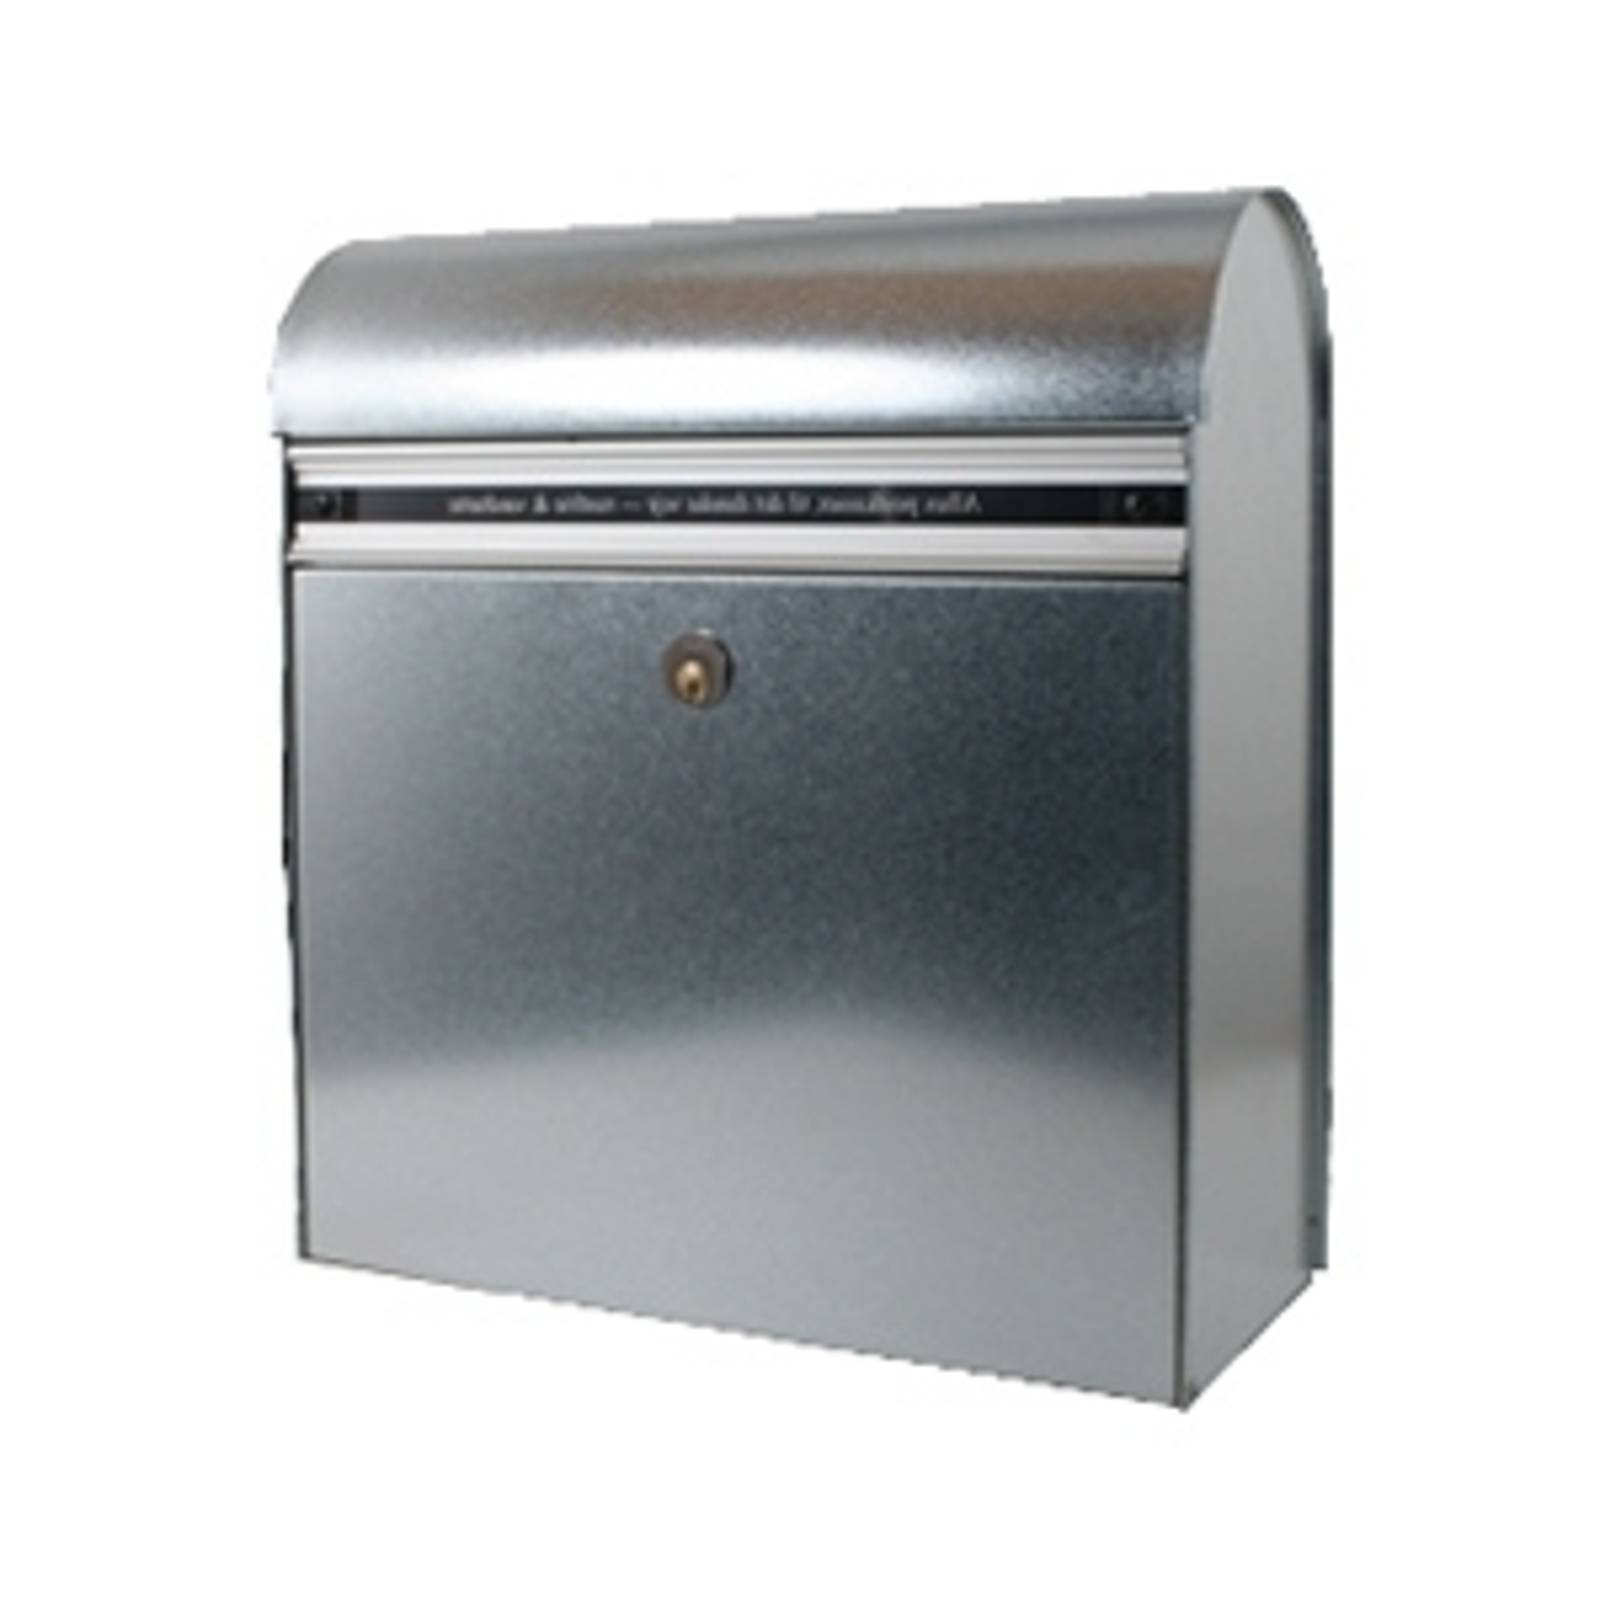 Robust letterbox KS200, steel from Juliana